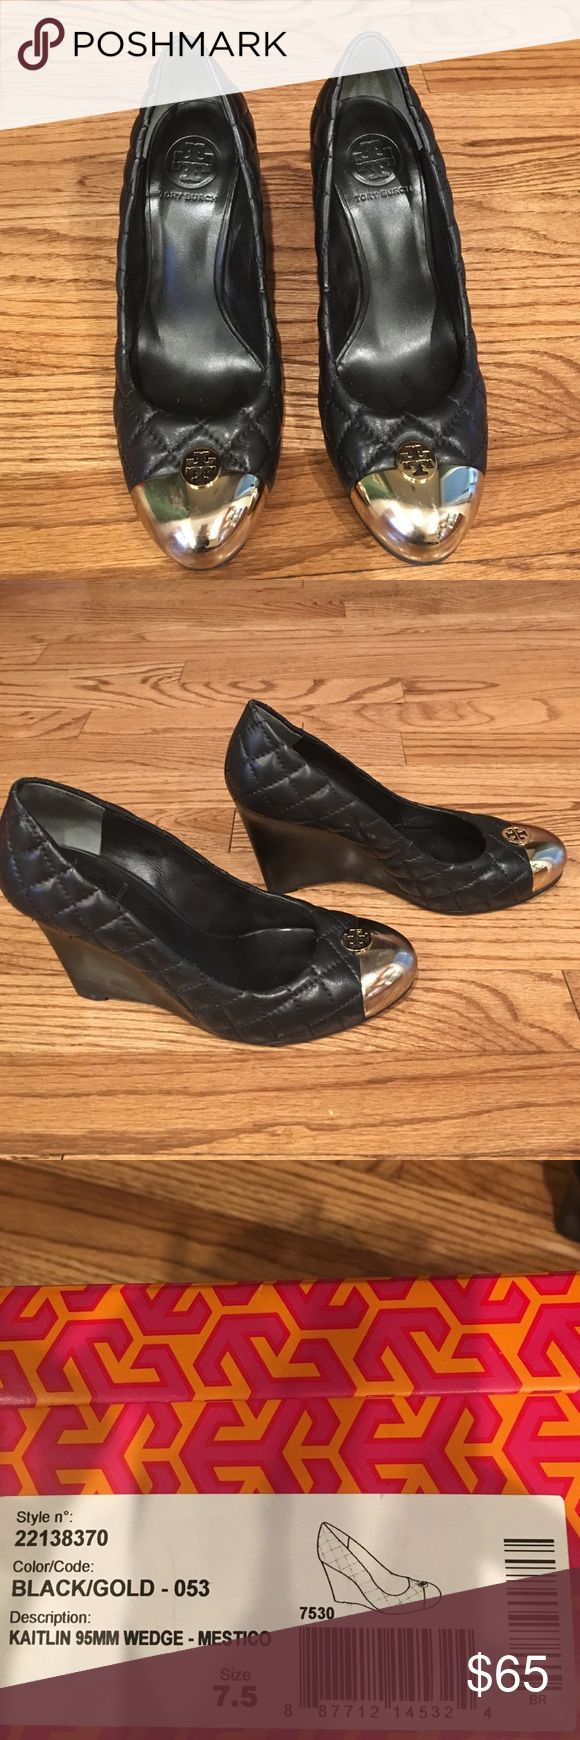 """Tory Birch quilted black leather cap toe wedges These are cute quilted leather wedges with a gold cap toe.  The heel is 3 7/8"""" high. Tory Burch Shoes Wedges"""